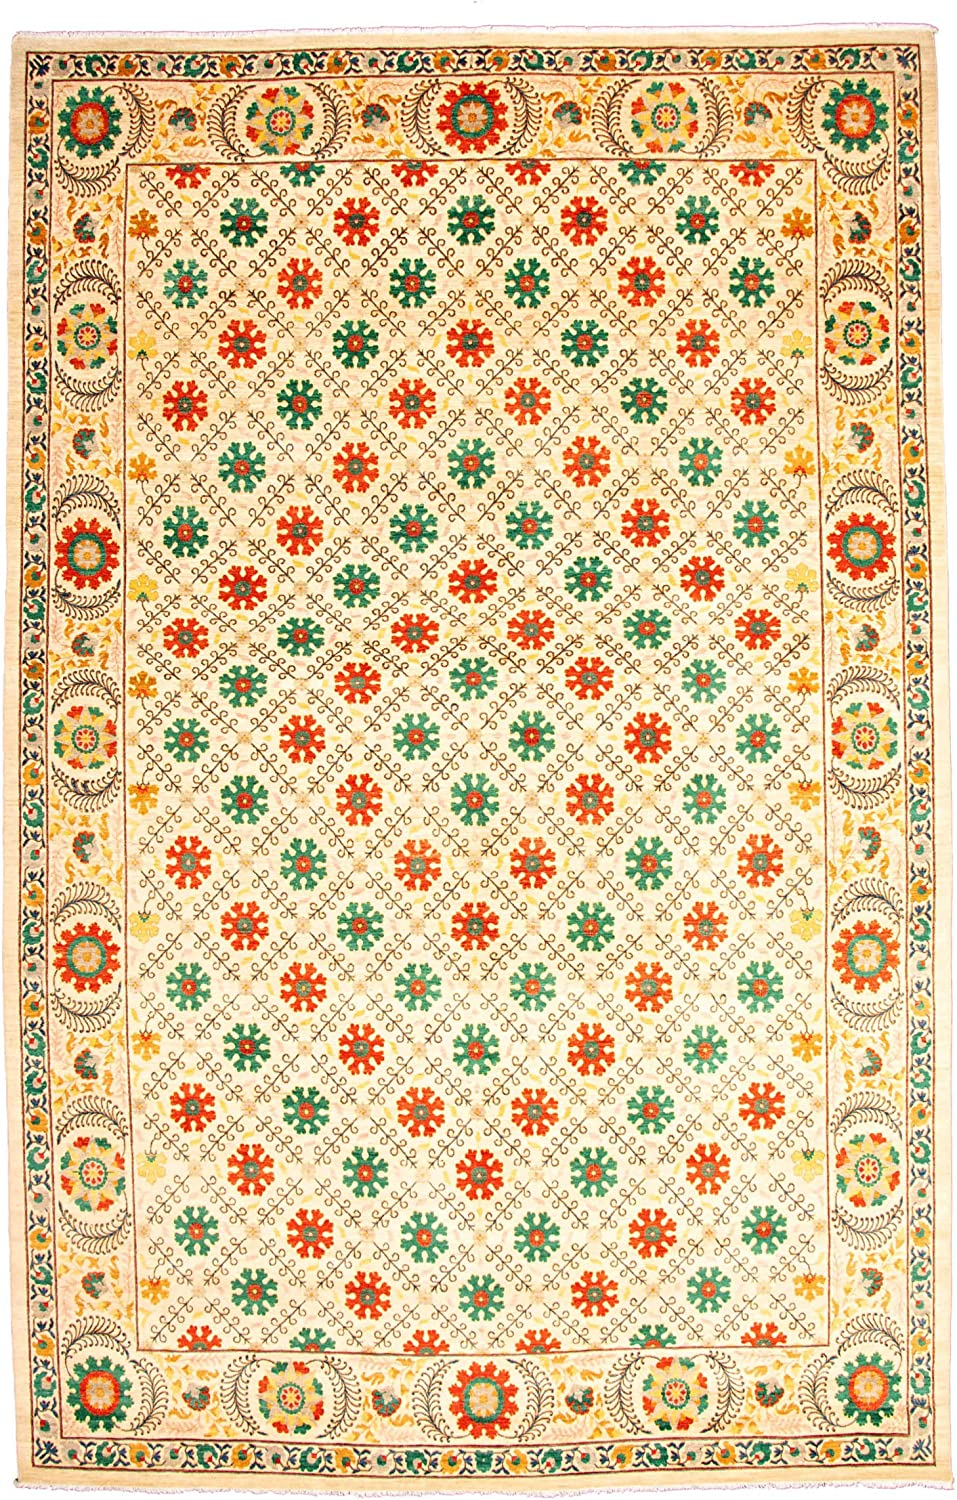 eCarpet Gallery Large Area Rug Hand-K Bedroom Living Gorgeous Online limited product for Room